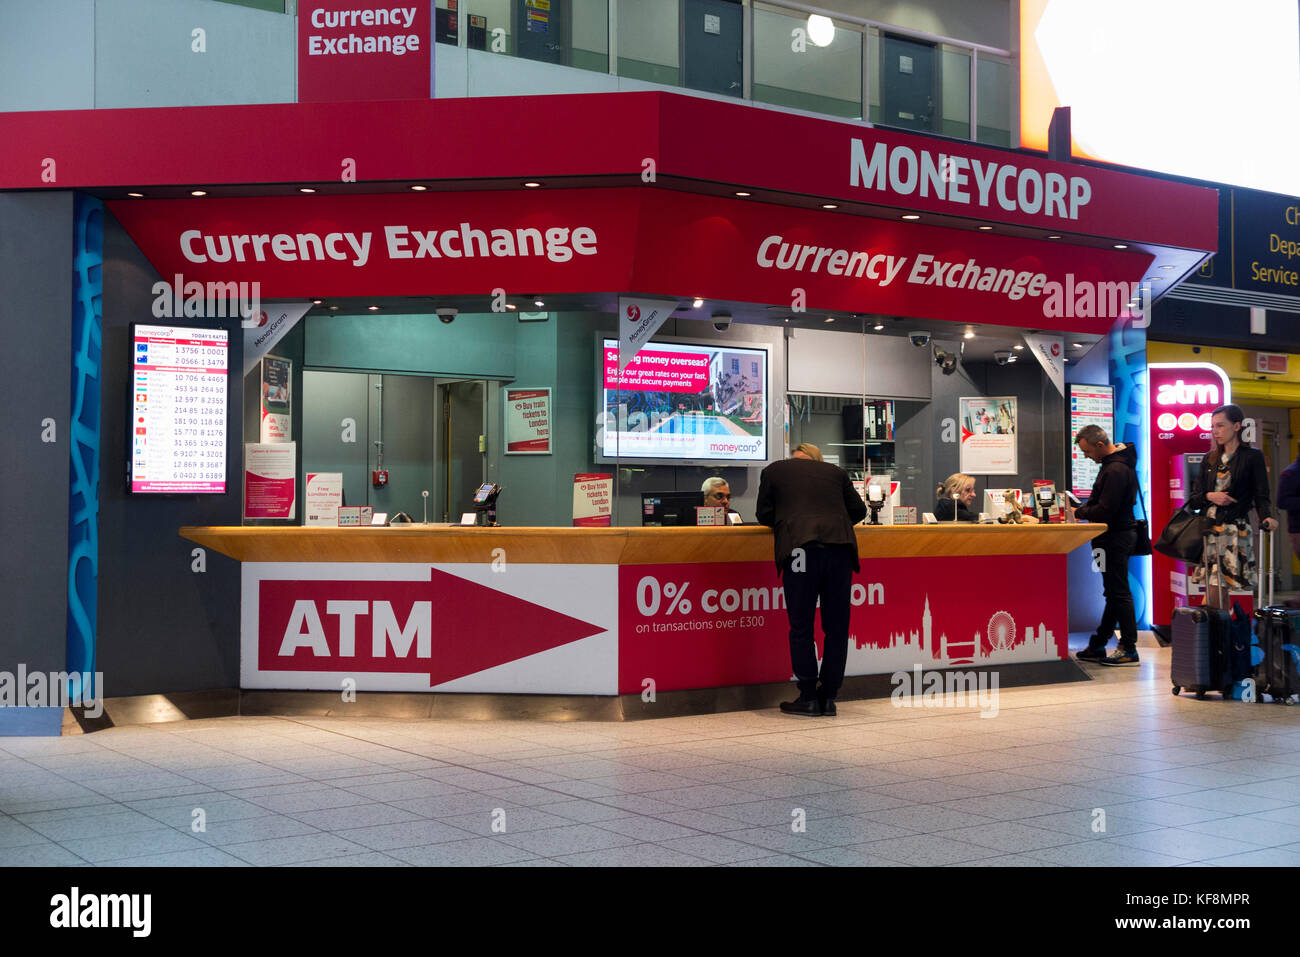 Currency exchange airport stock photos currency exchange airport stock images alamy - Gatwick airport bureau de change ...